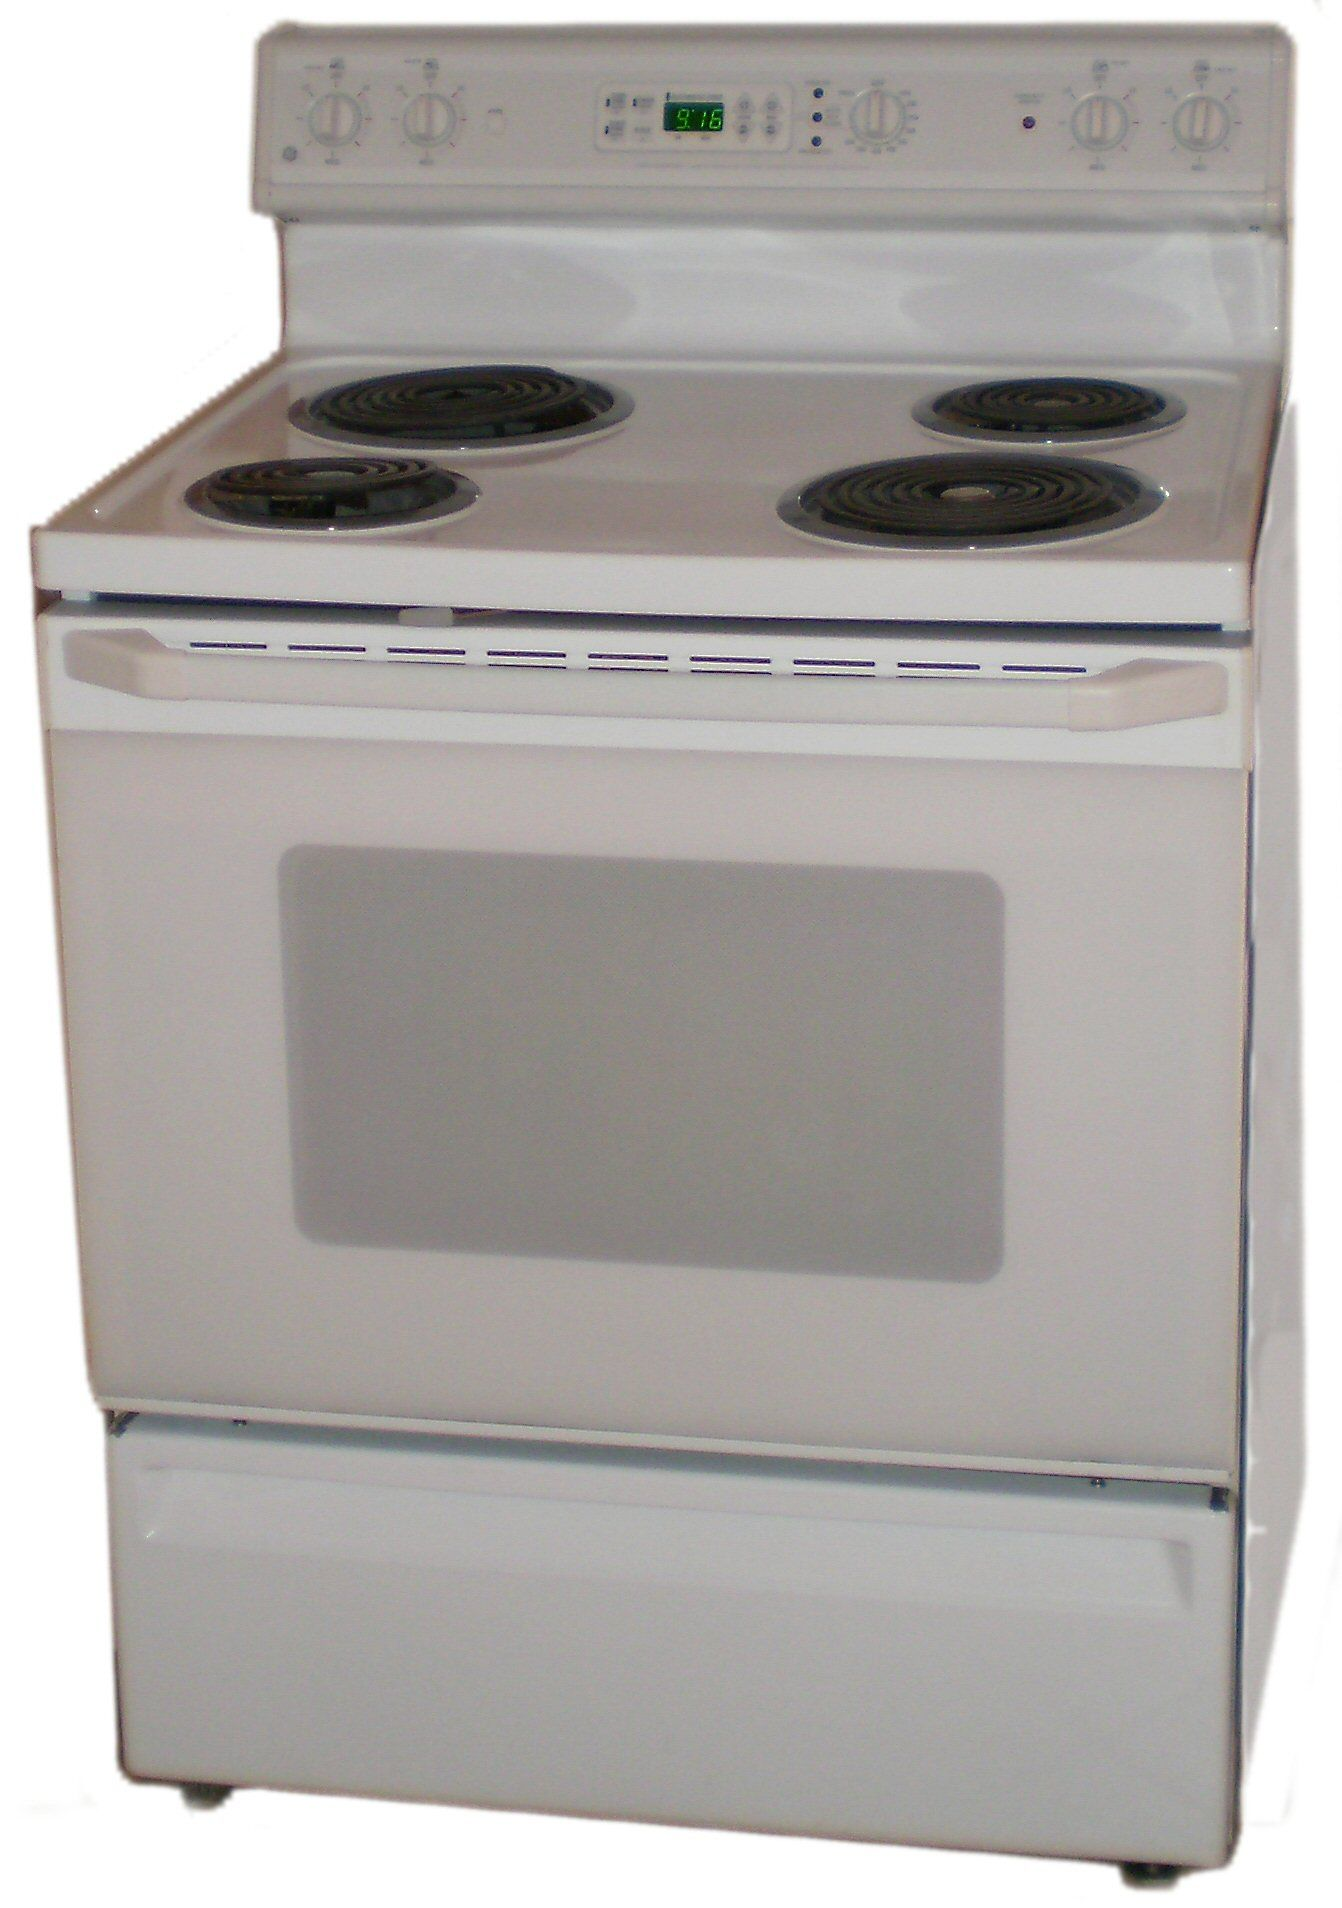 Electric Ovens And Cooktops Tip If You Have The Coil Type Burners